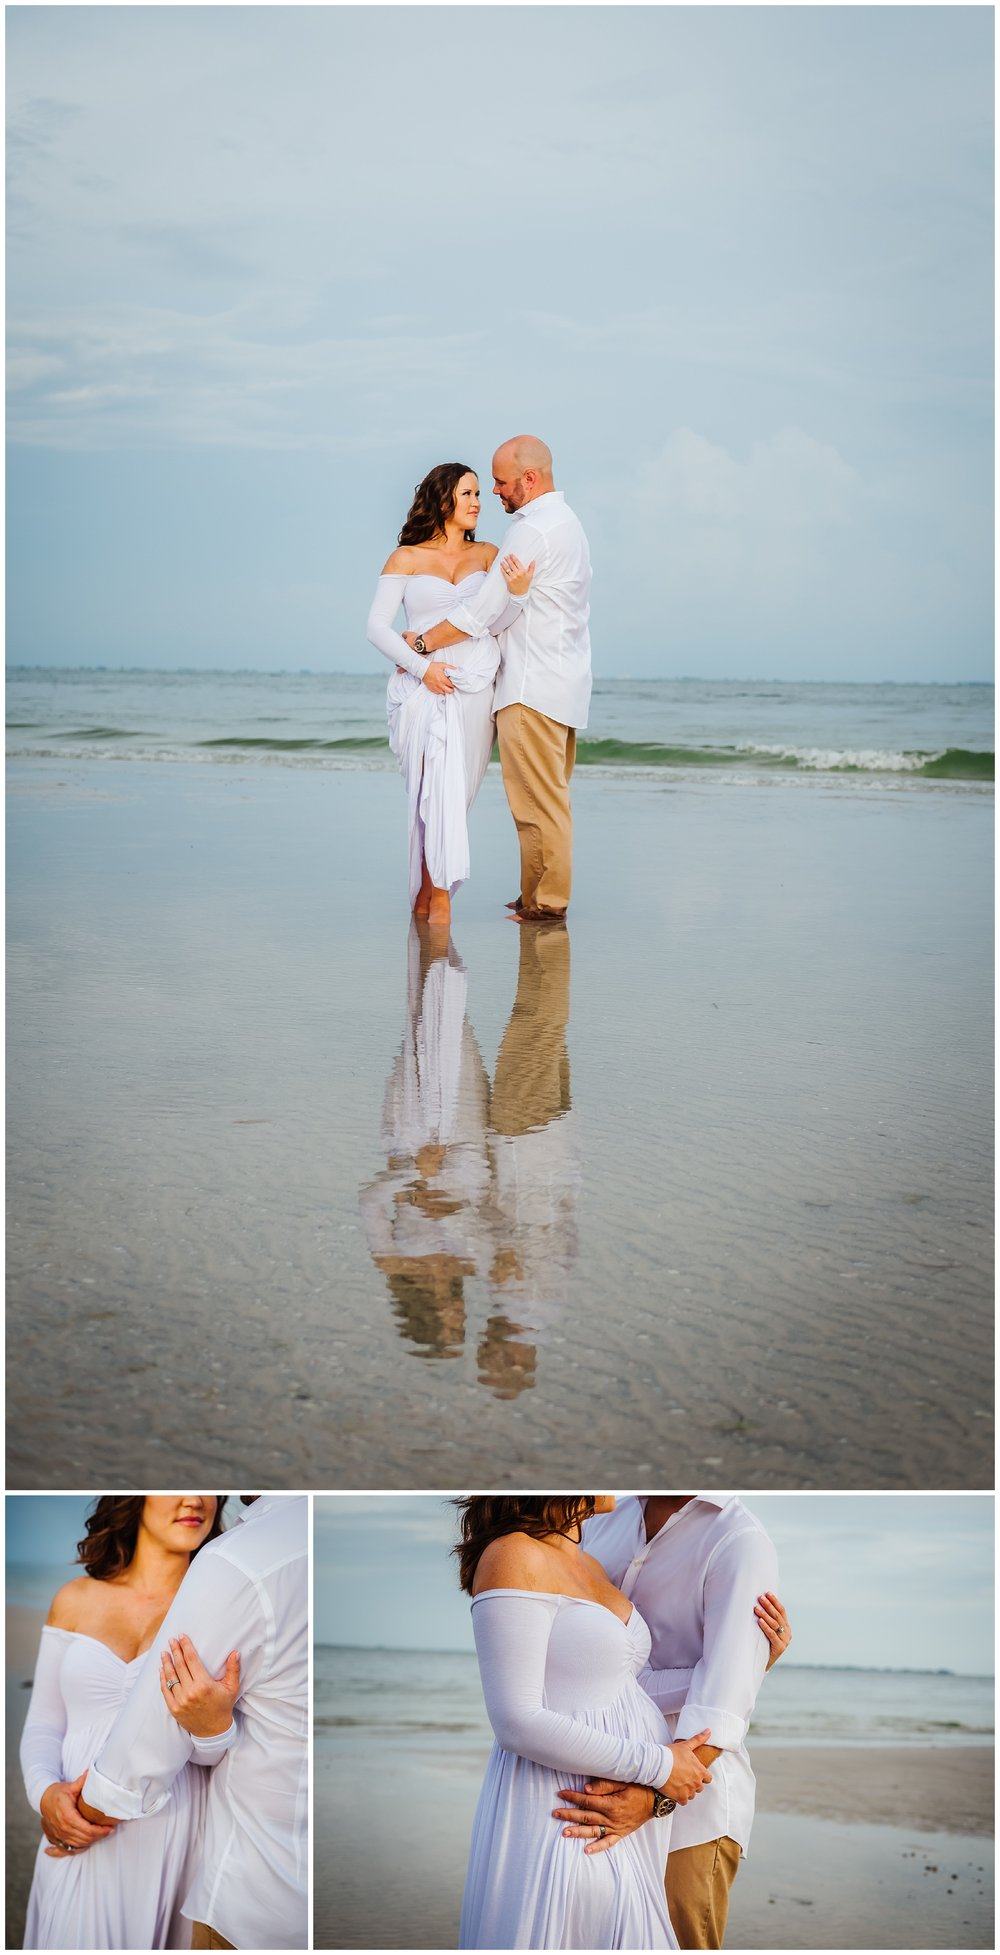 fort-desoto-maternity-photos-florida-beach-sunset_0011.jpg